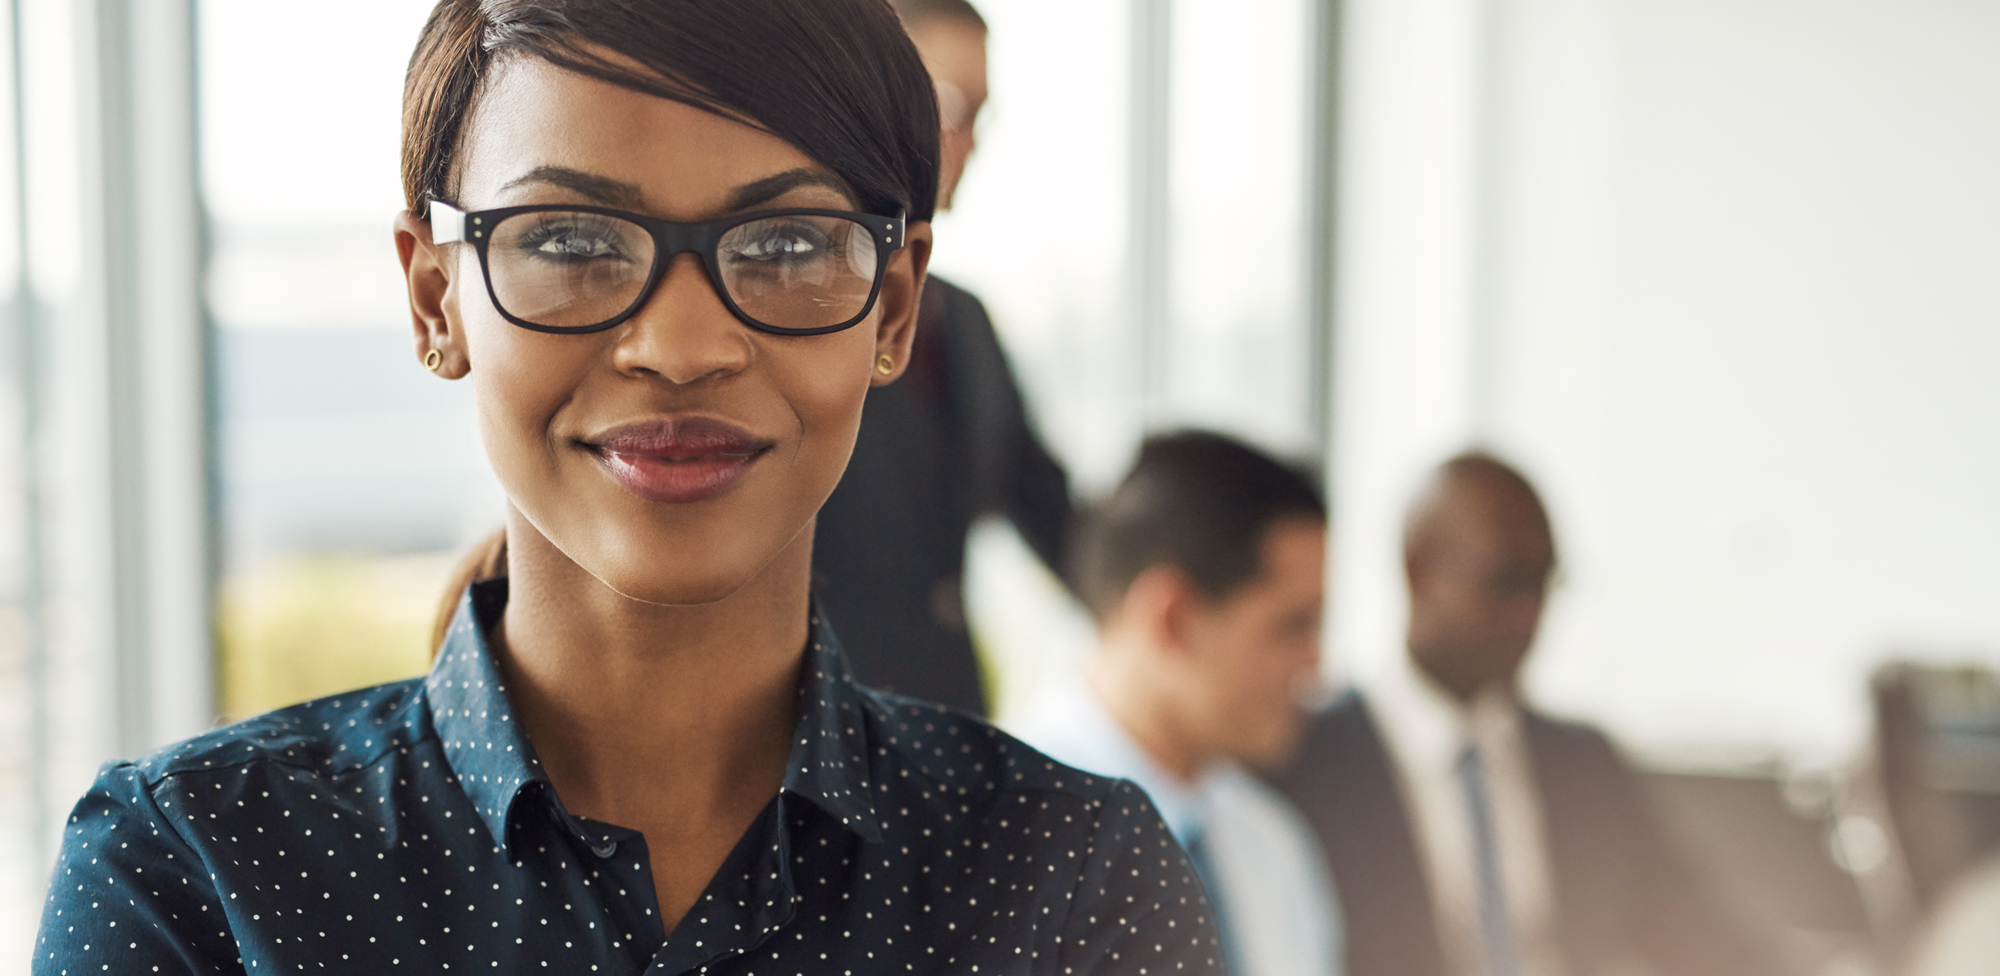 business woman smiling in conference room